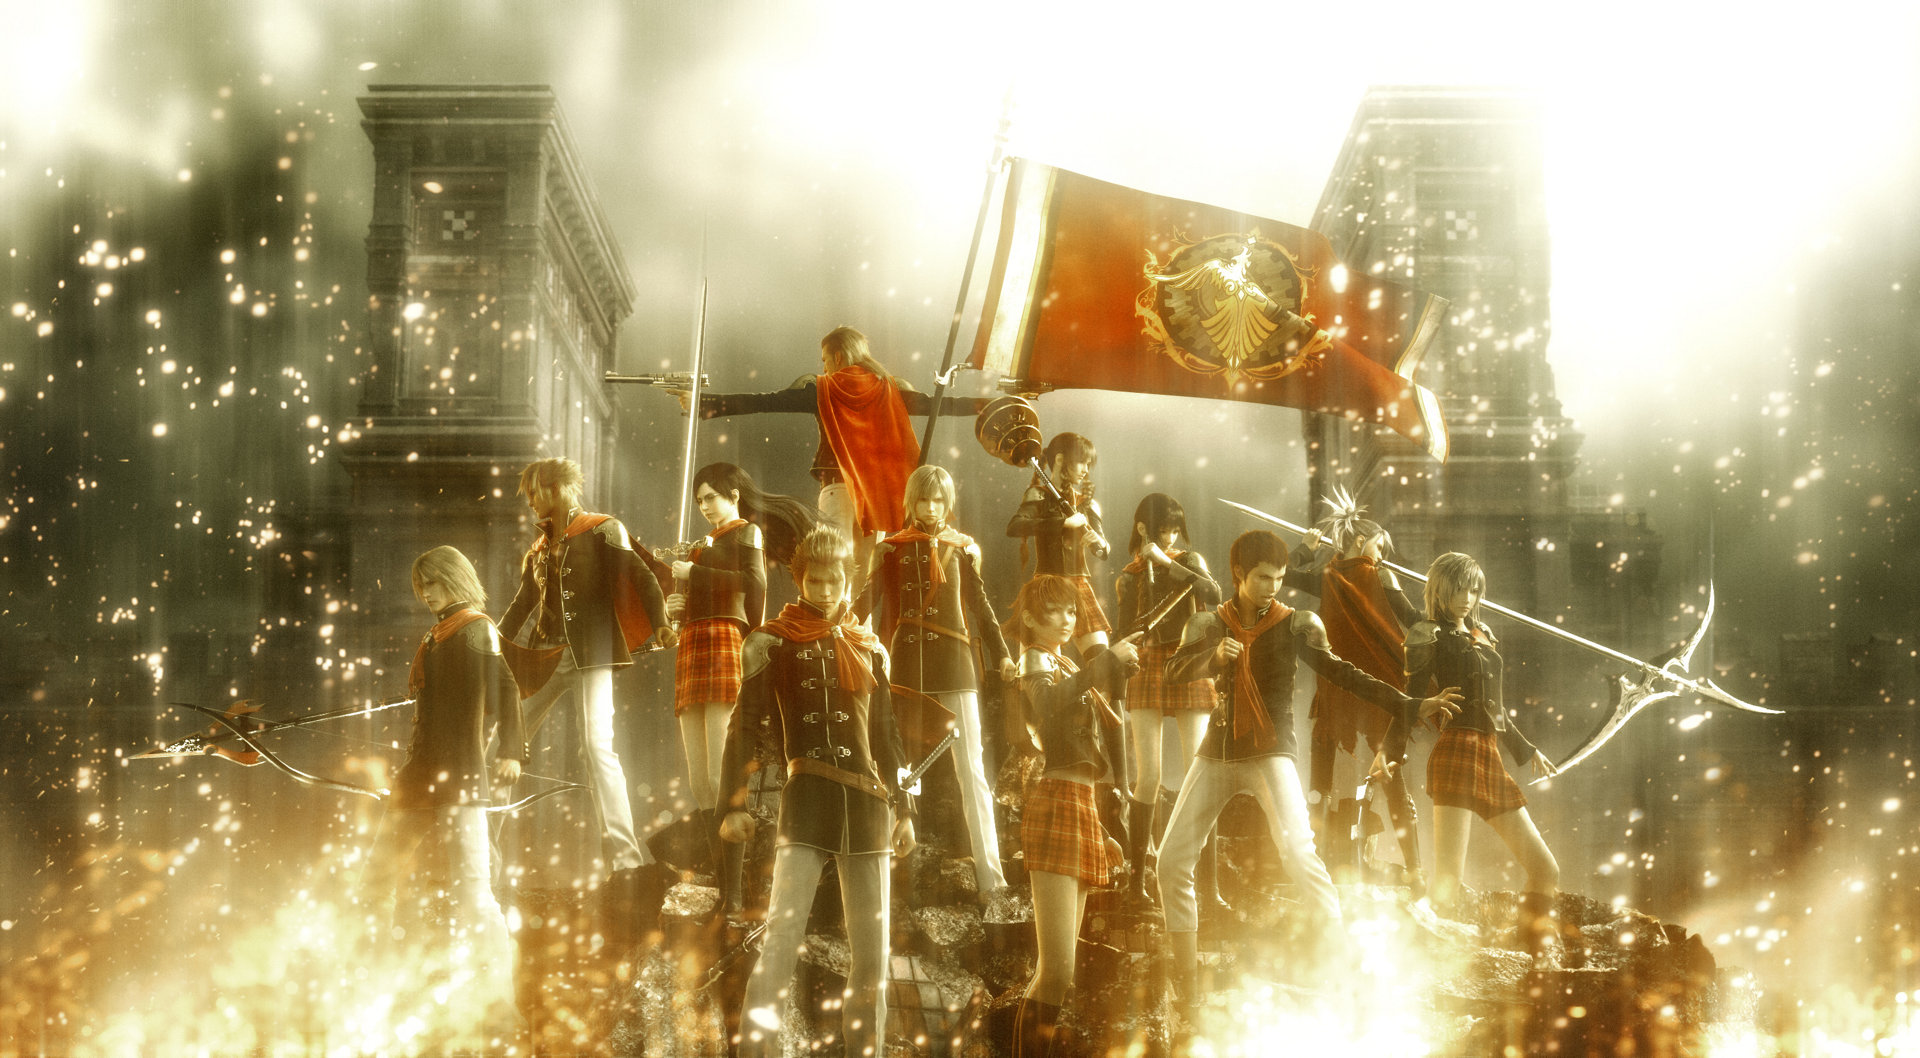 final-fantasy-type-0-hd-screen-04-ps4-us